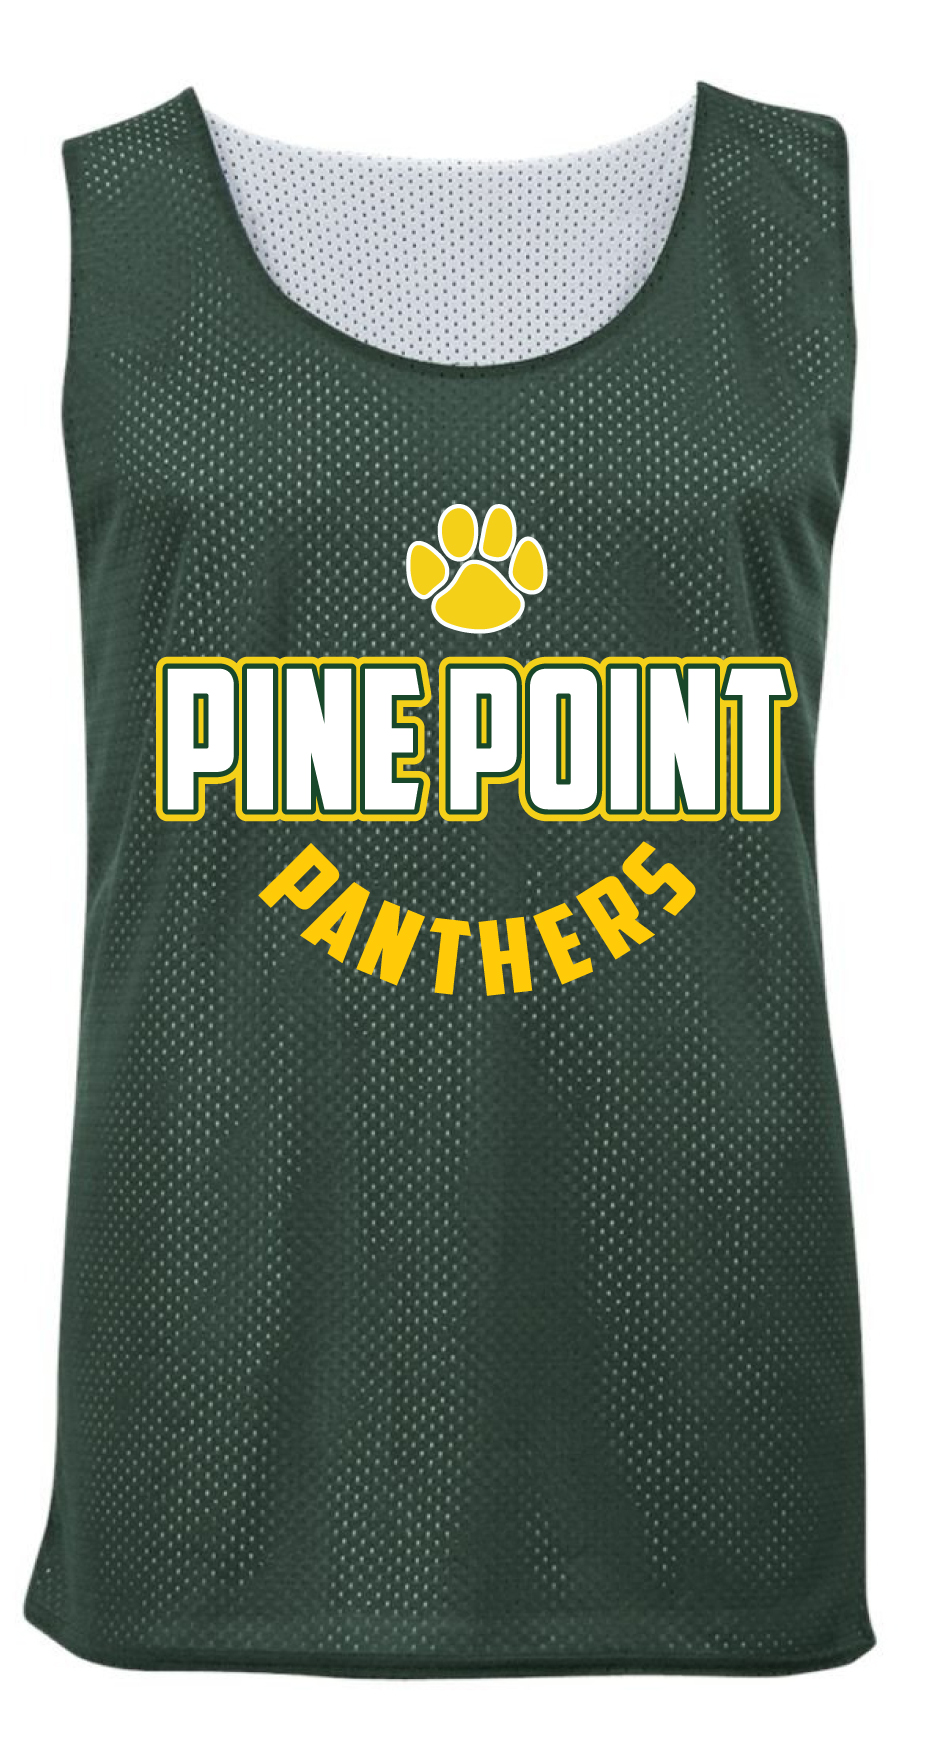 Pine Point basketball jersey